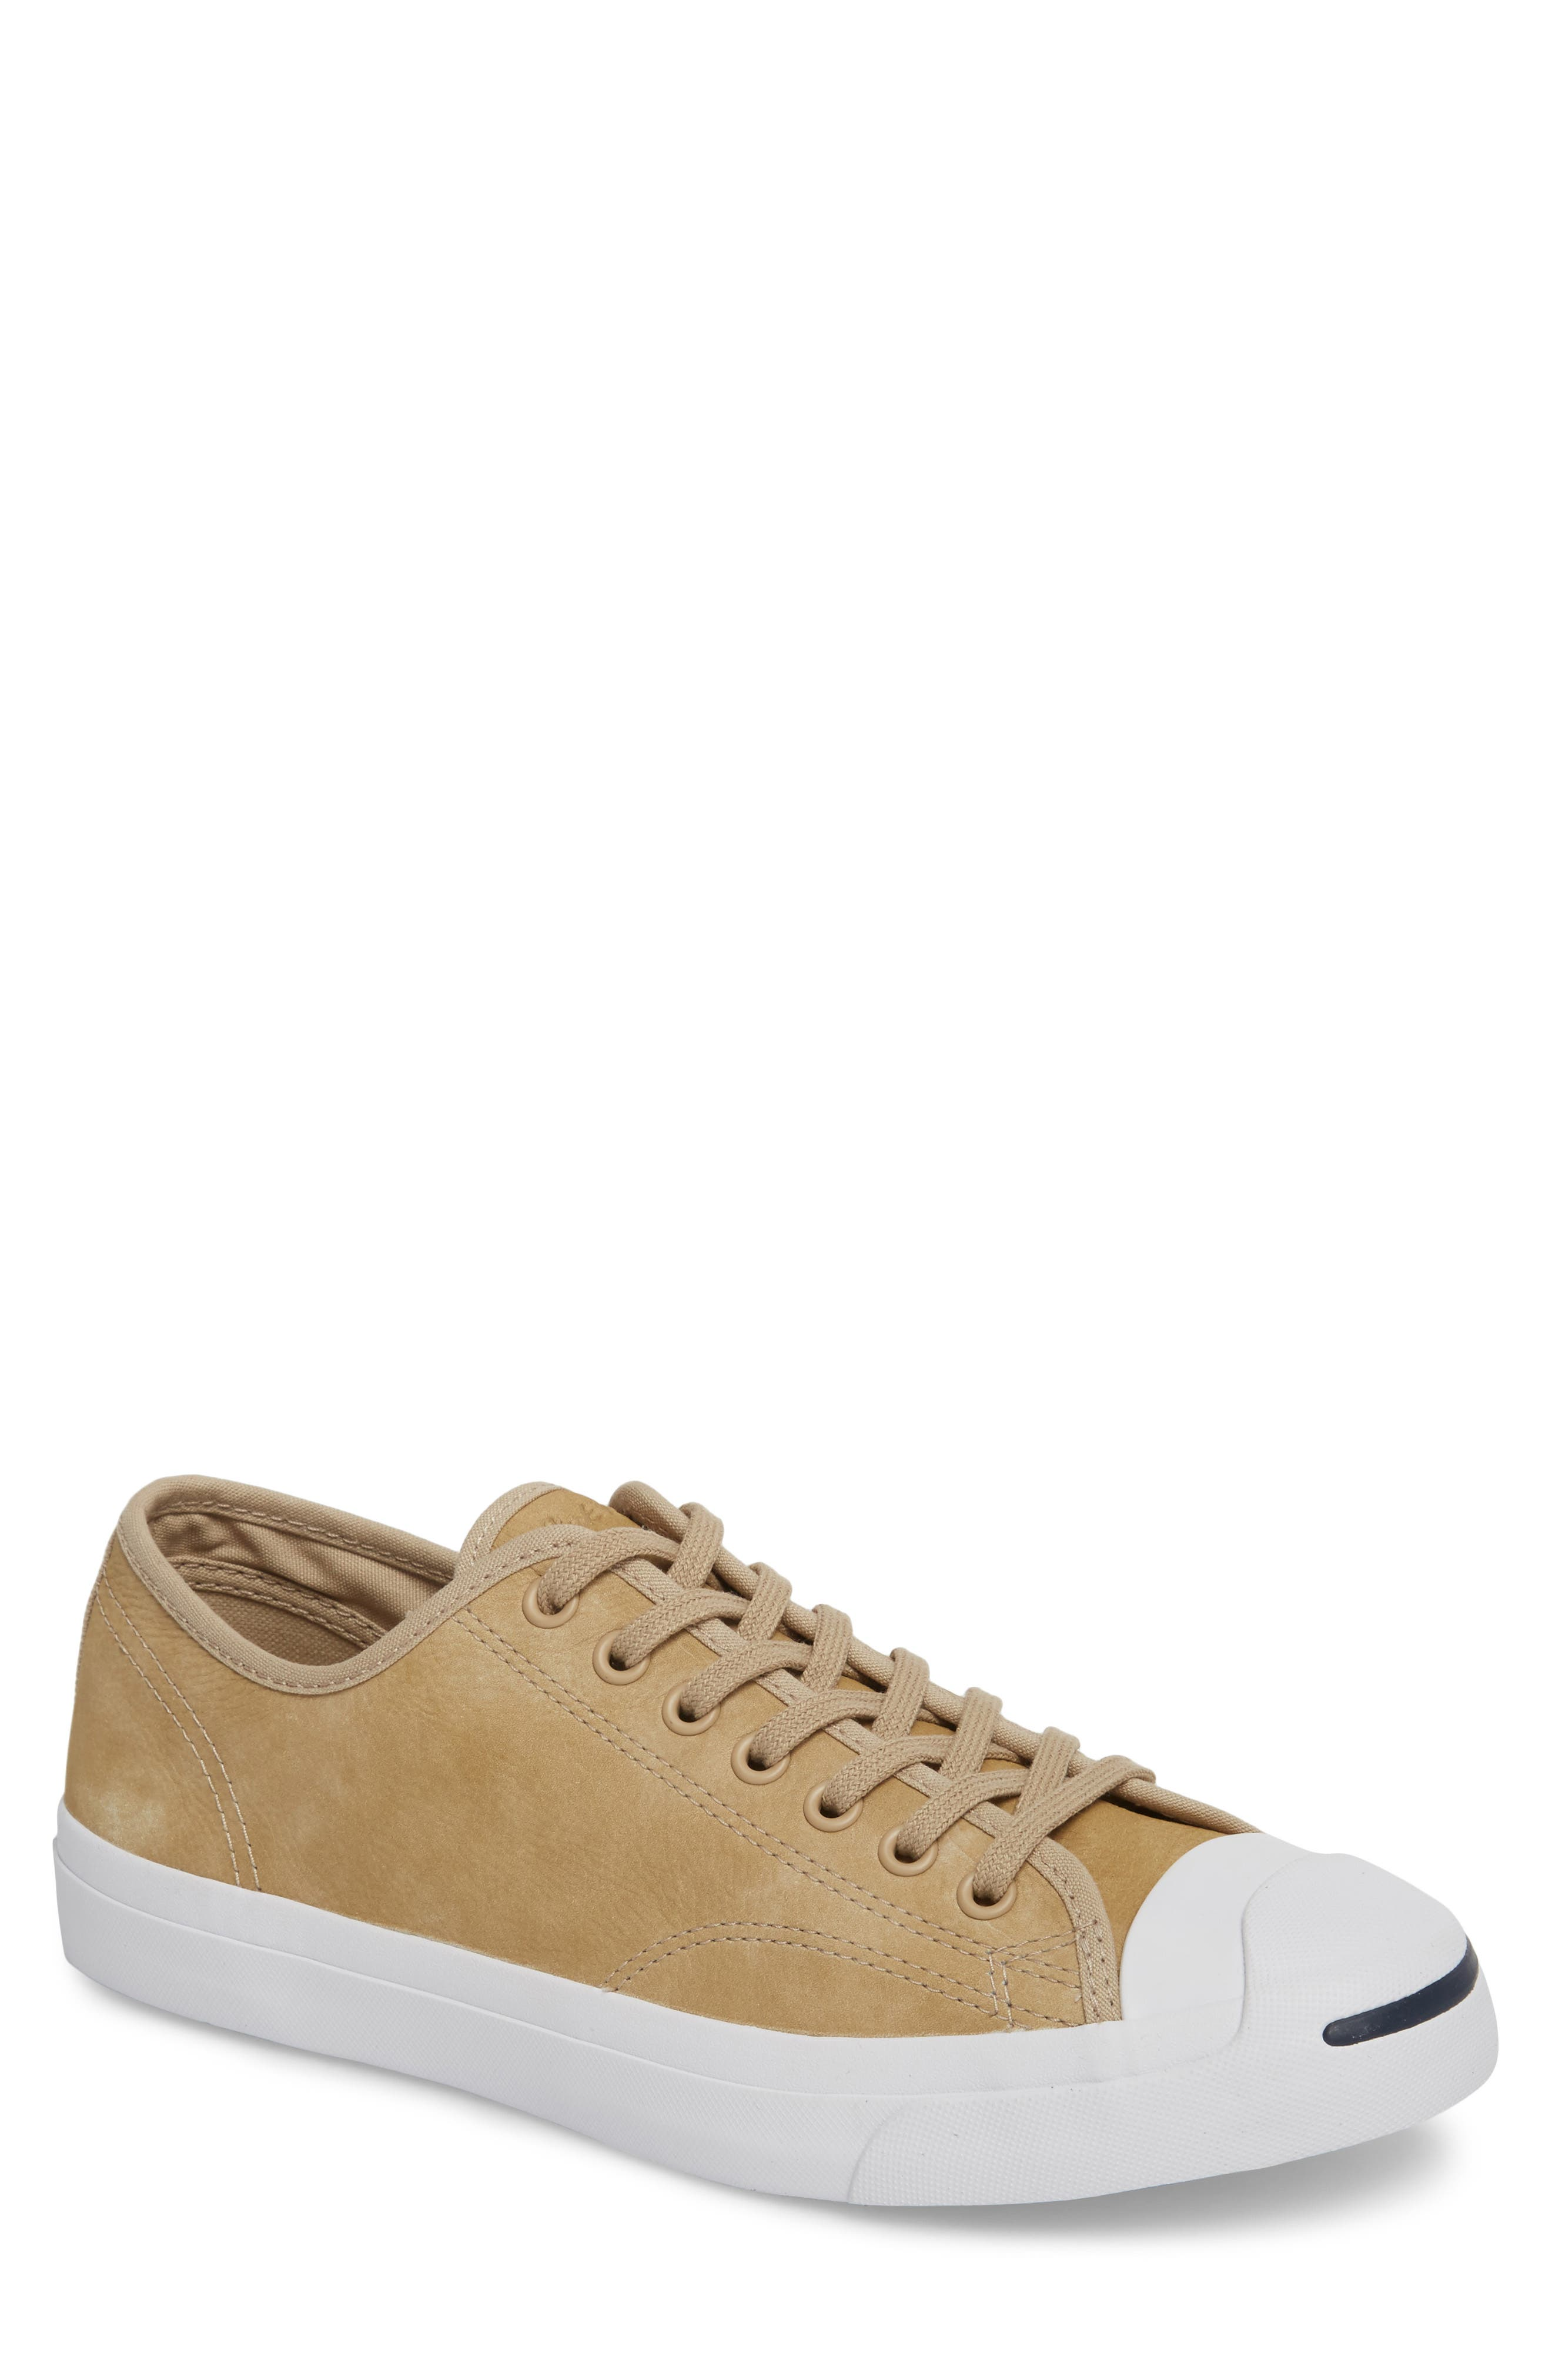 'Jack Purcell - Jack' Sneaker,                             Main thumbnail 1, color,                             270